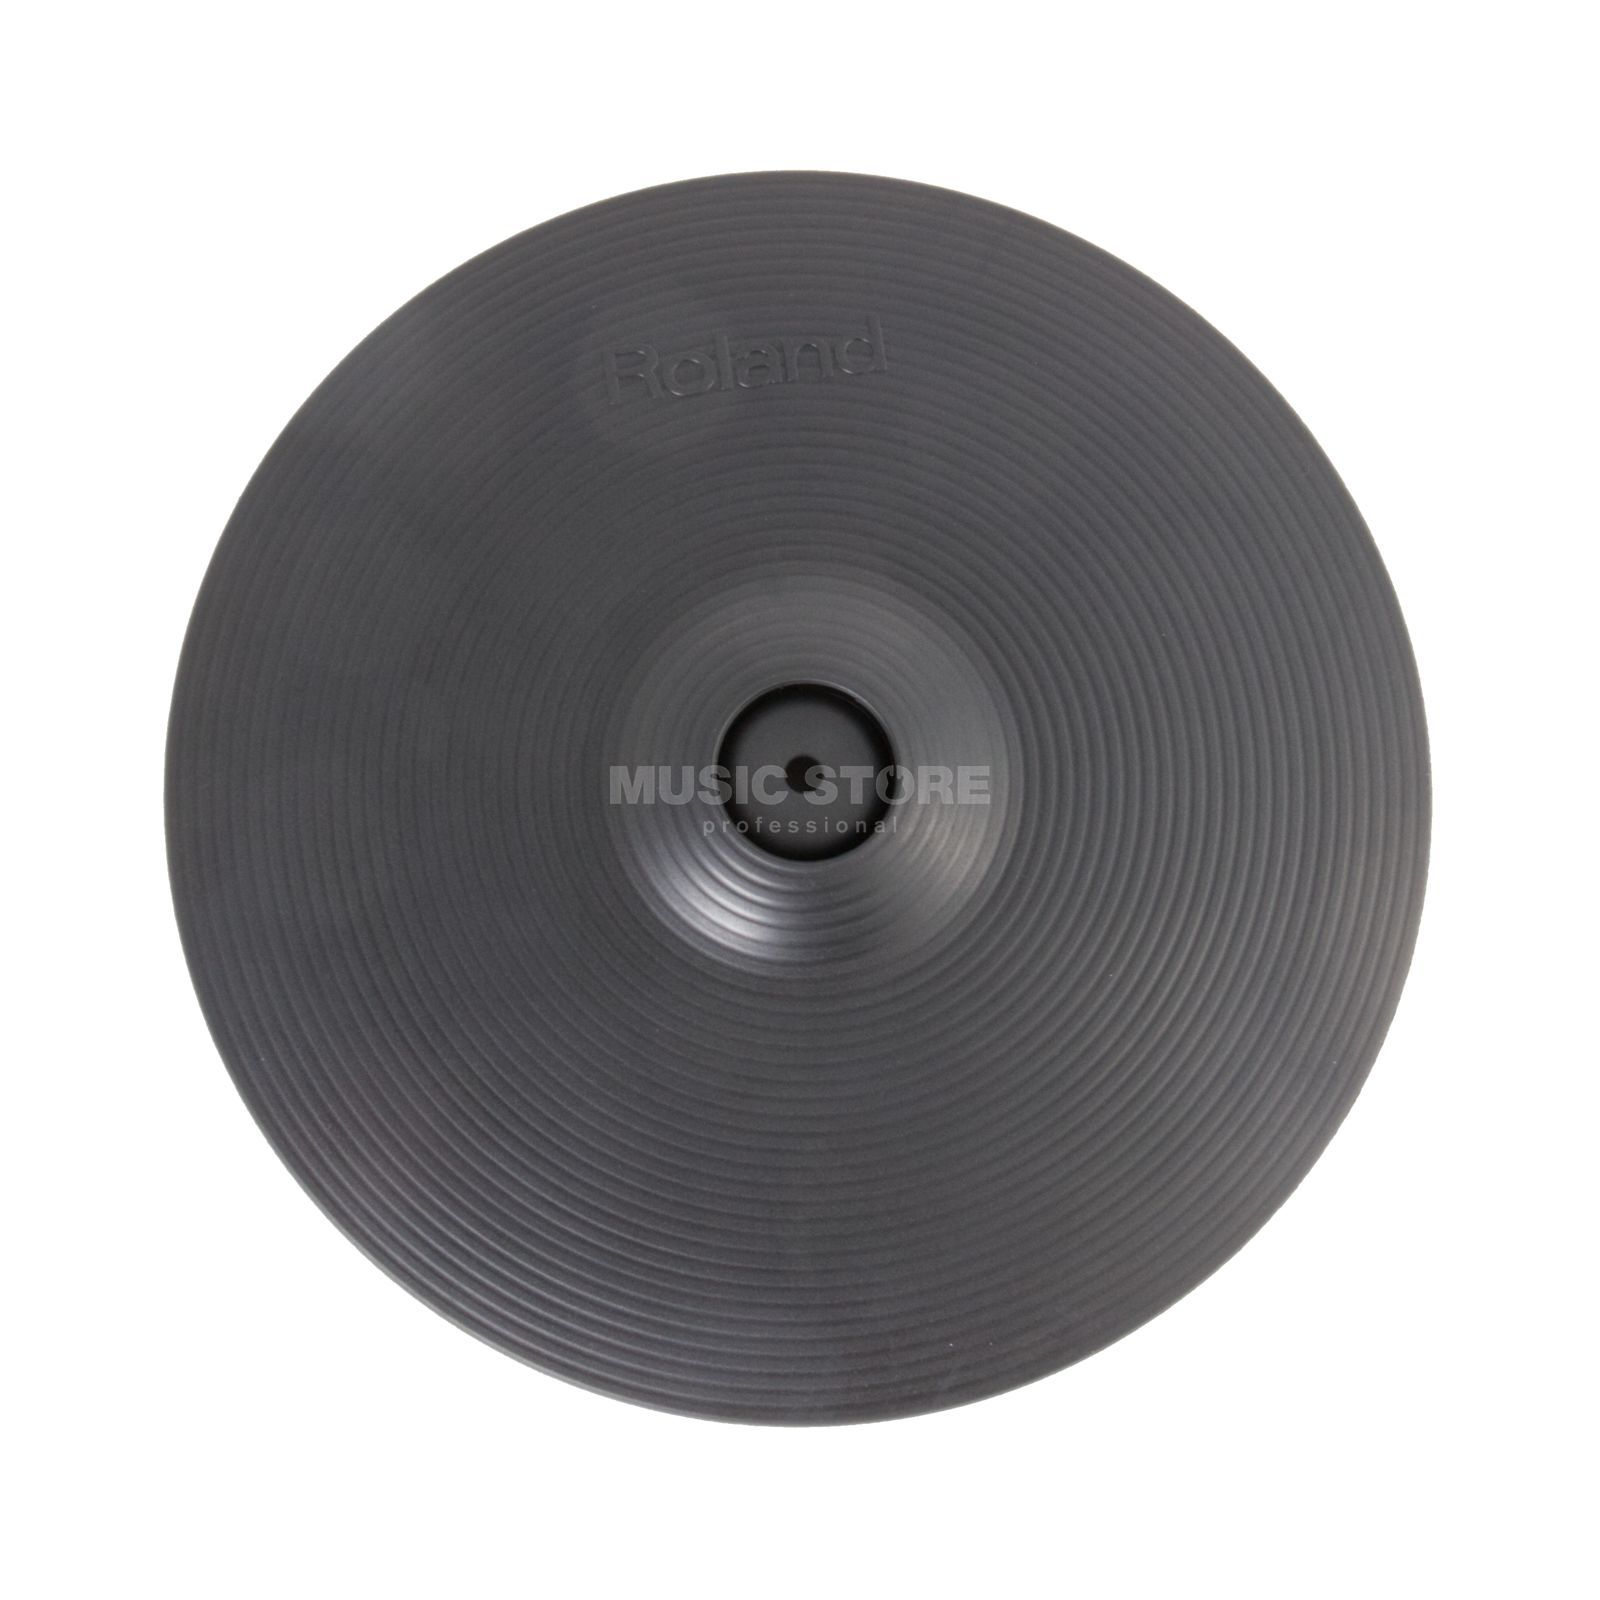 Roland Cymbal Pad CY-12C  Imagen del producto